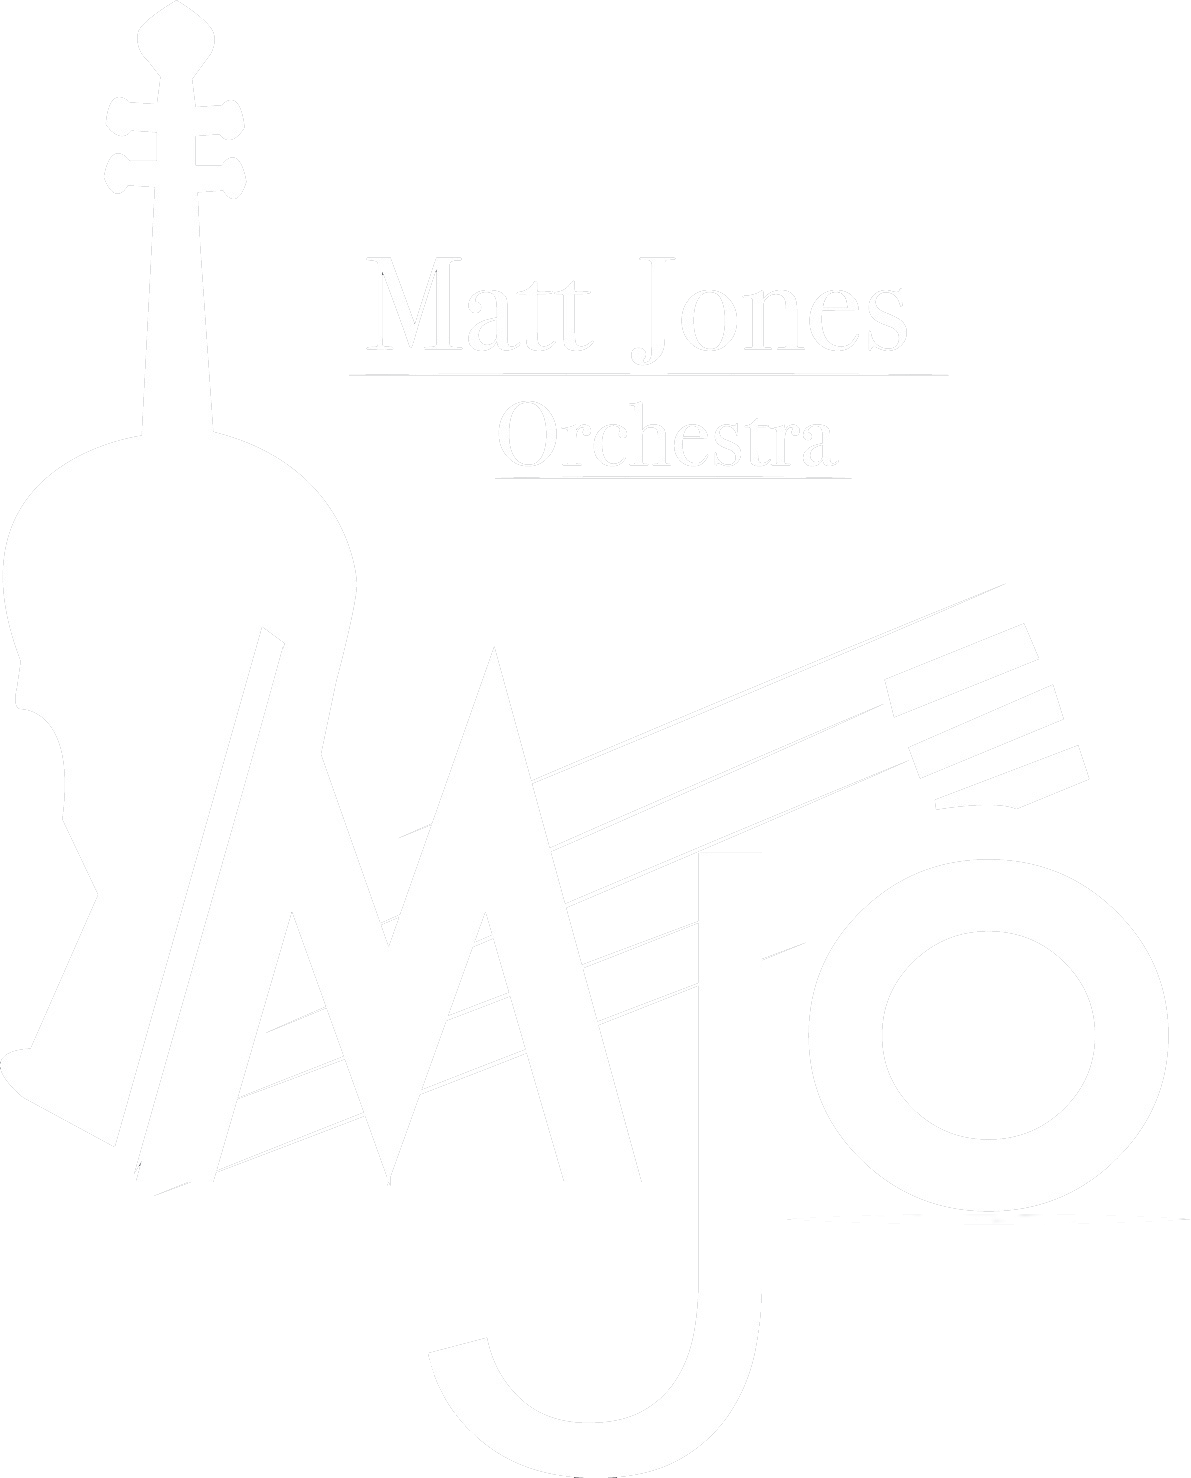 Matt Jones Orchestra